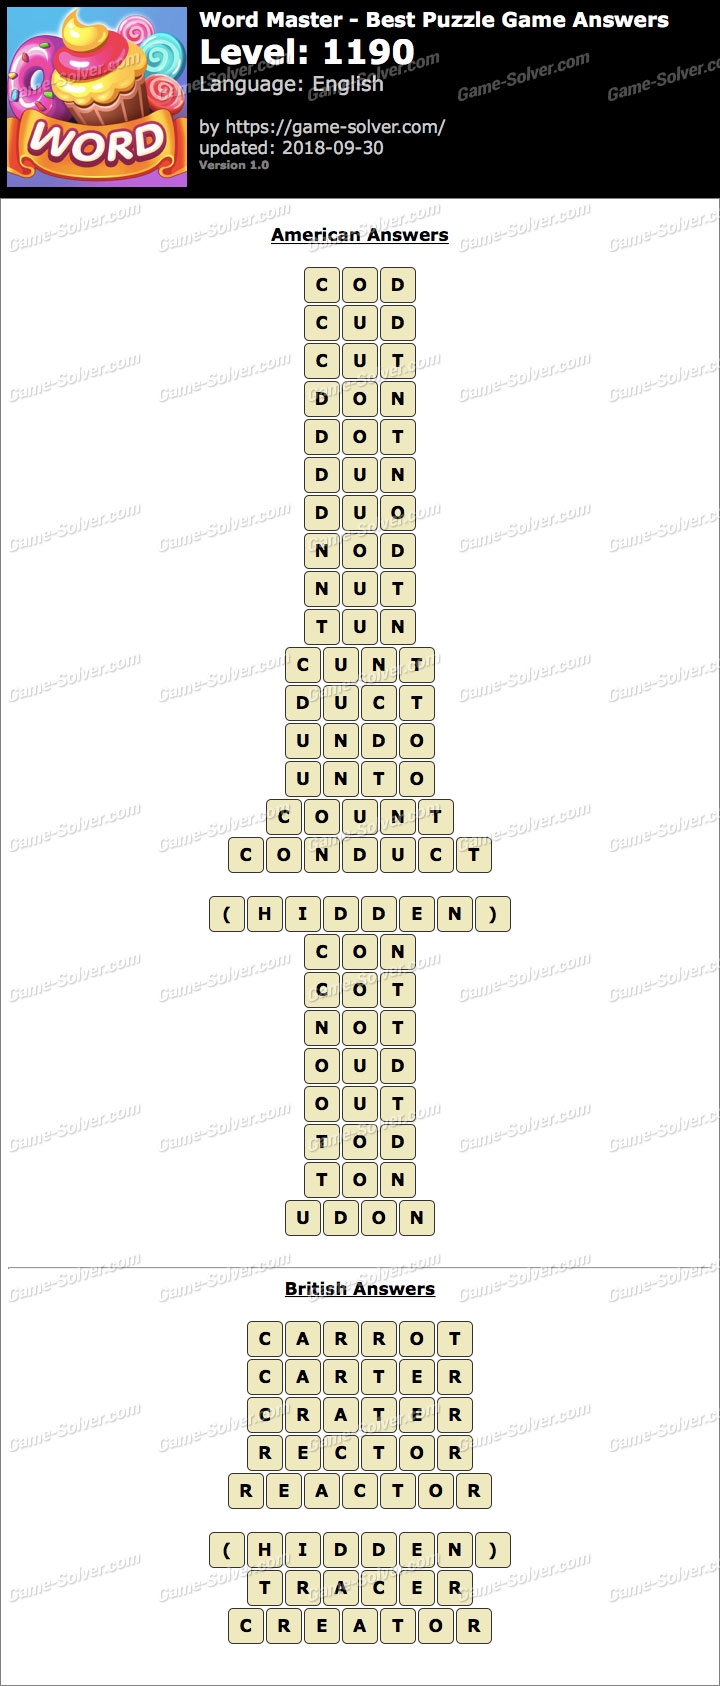 Word Master-Best Puzzle Game Level 1190 Answers